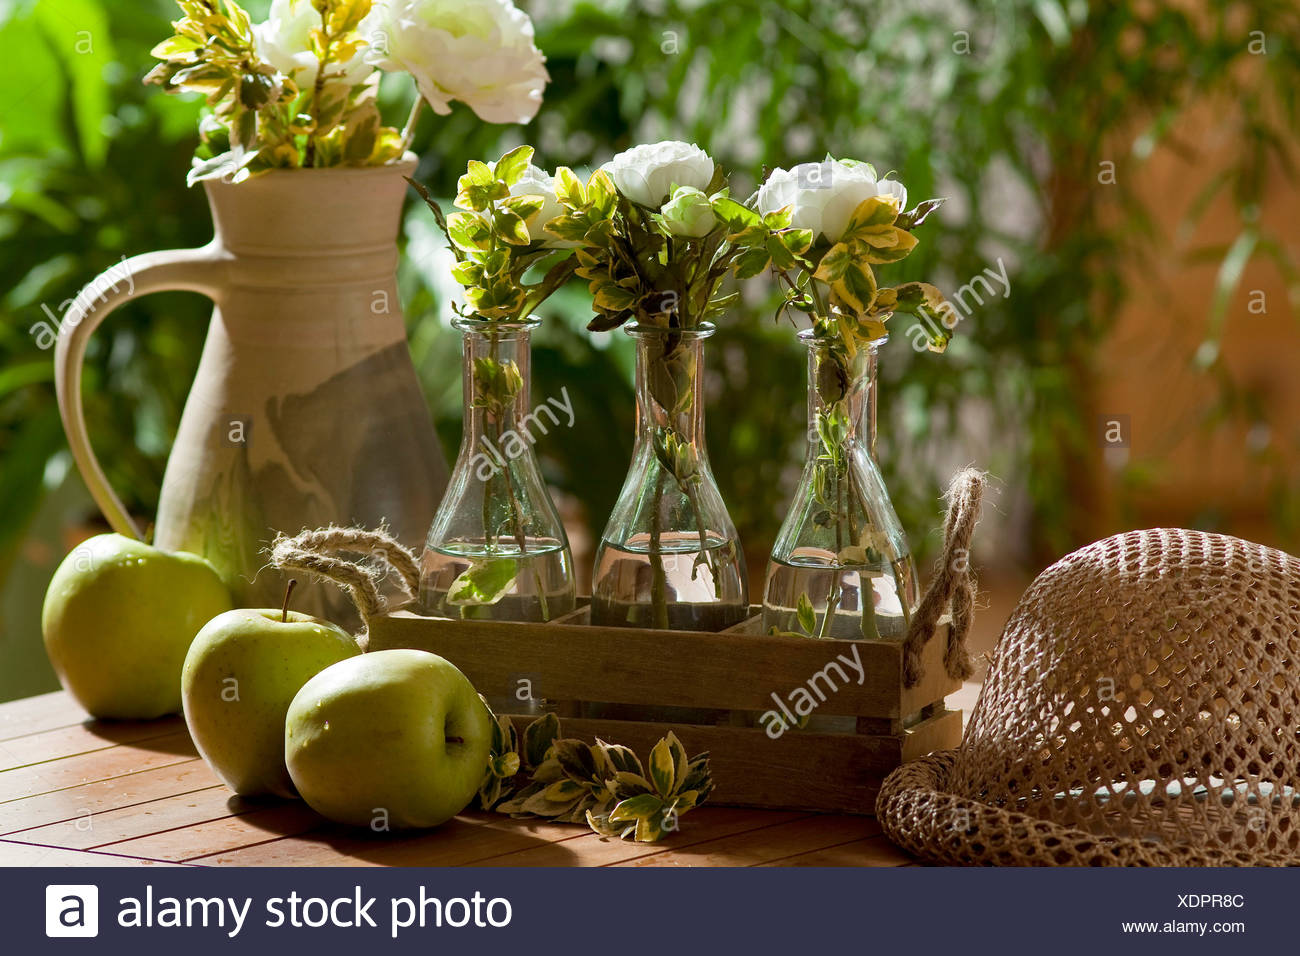 Crowfoot And Green Apple Decorations Stock Photo 283857628